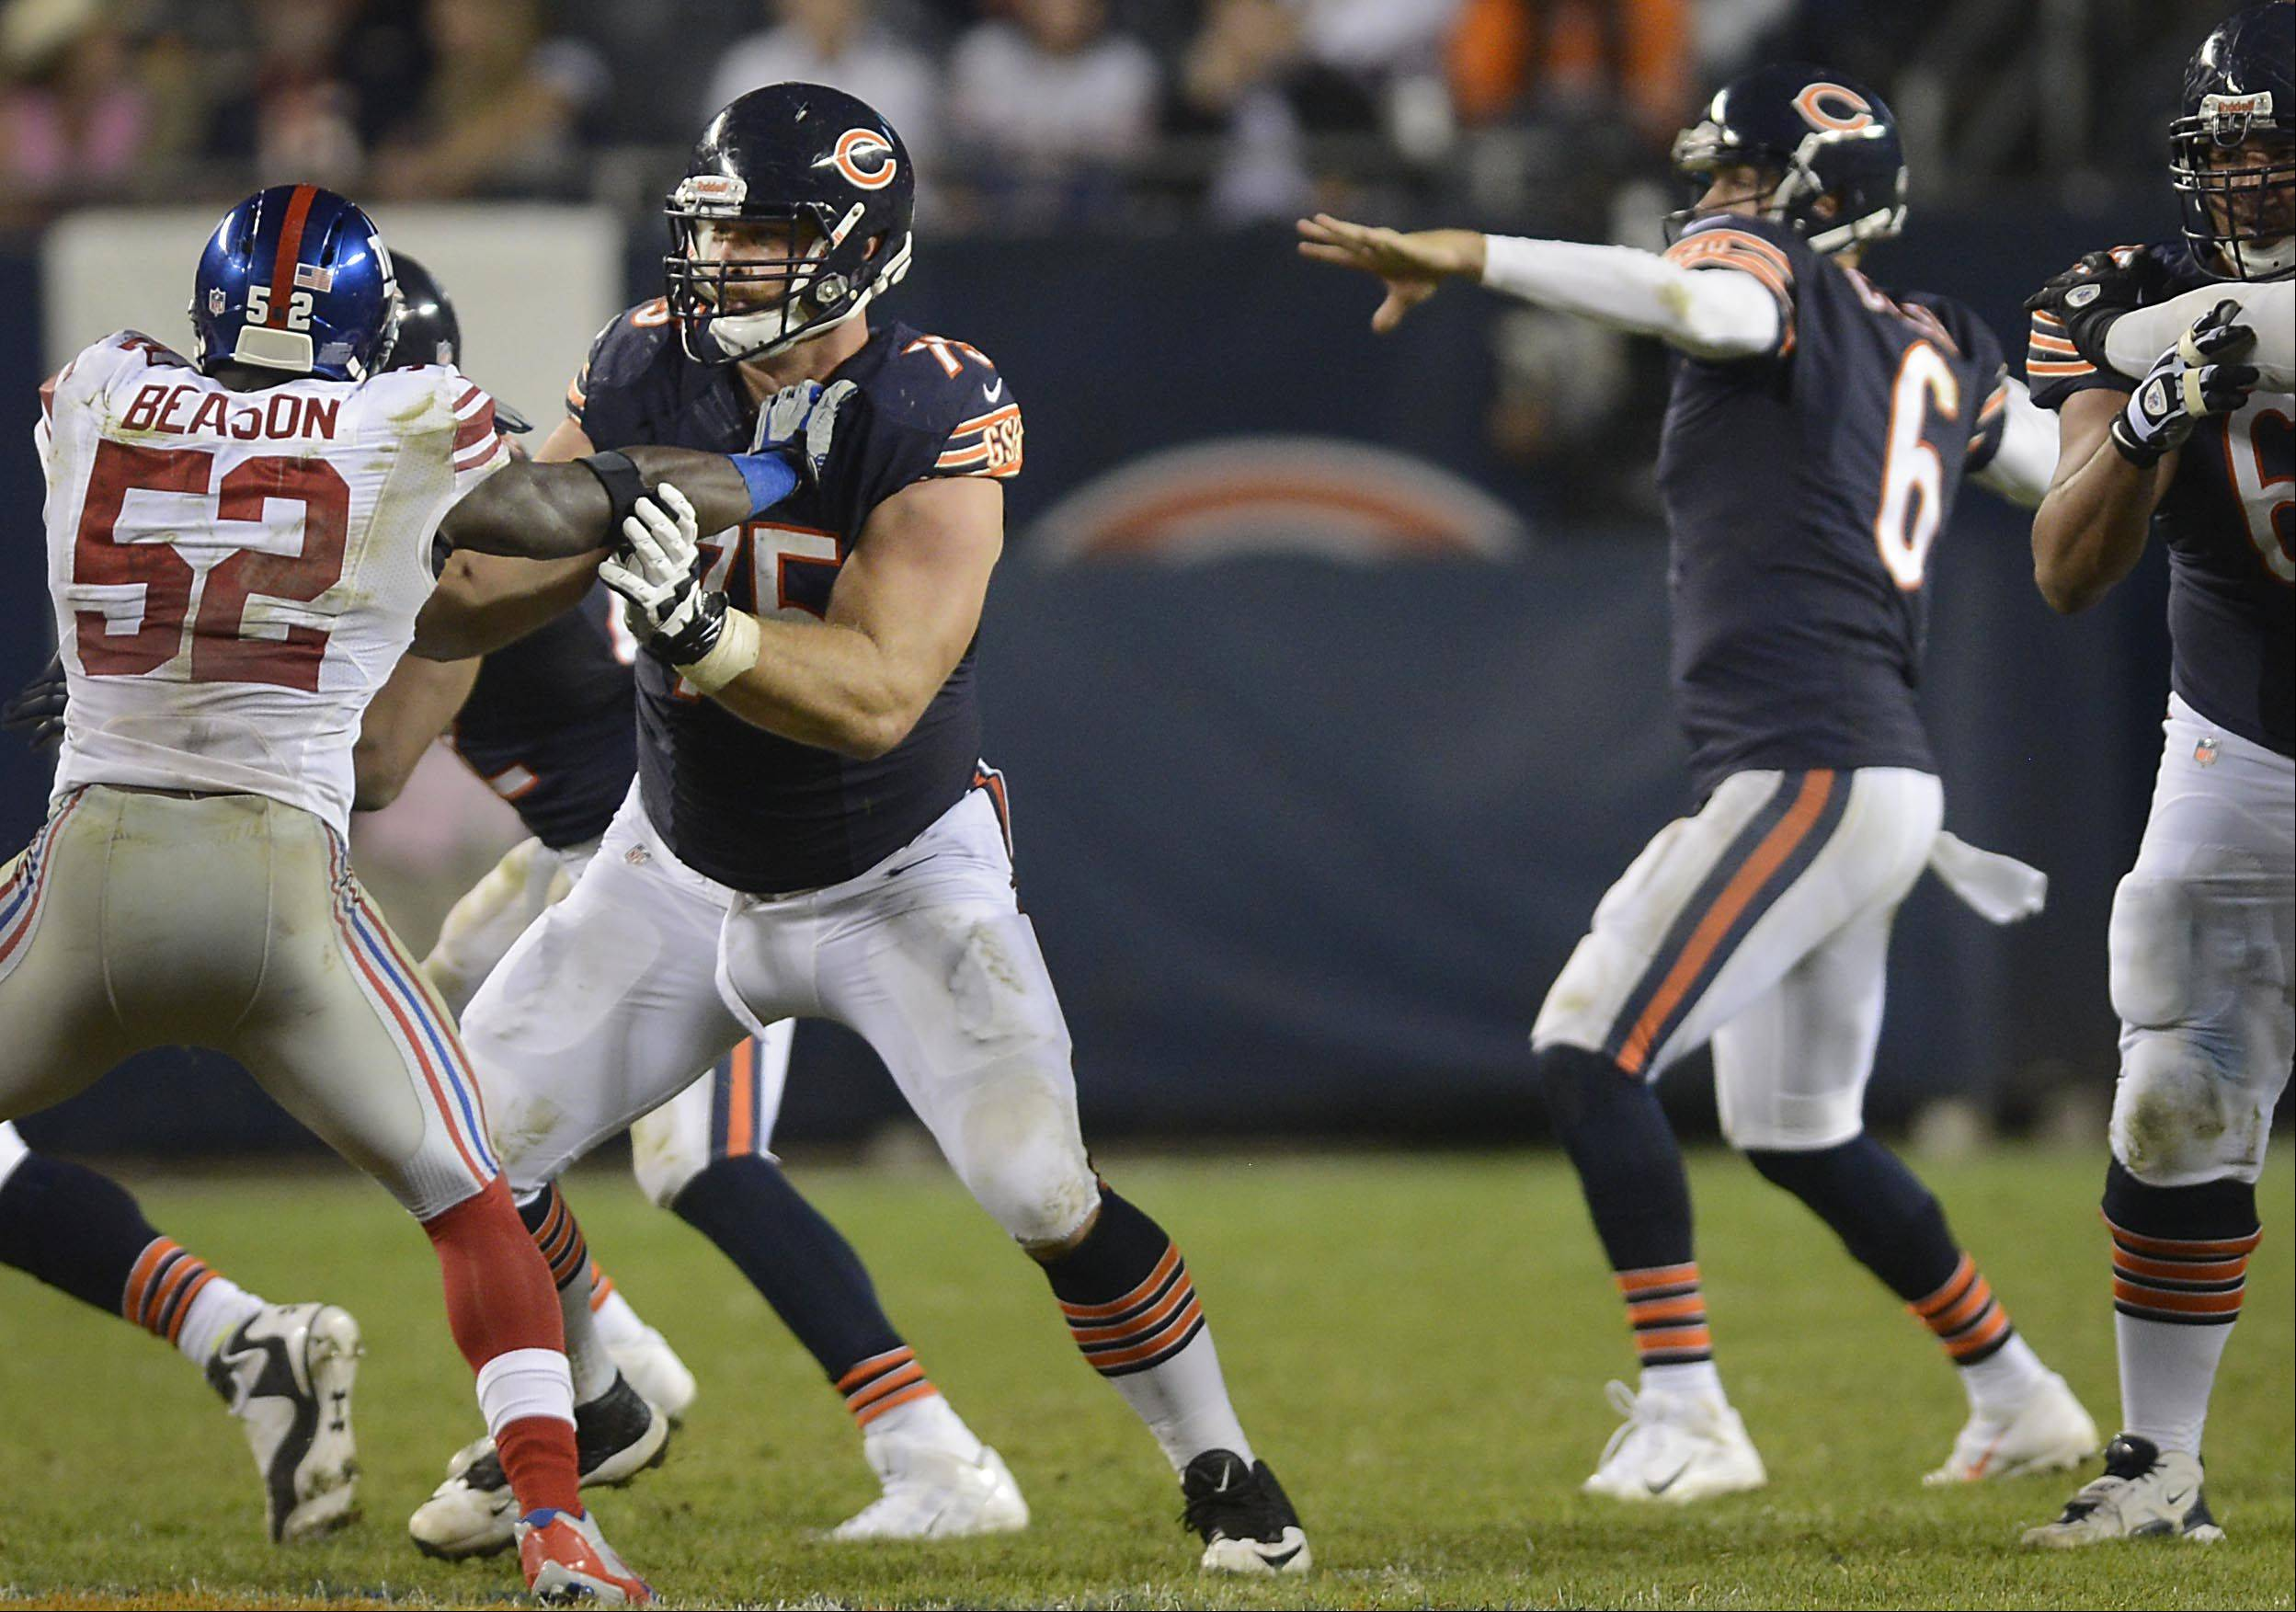 Chicago Bears offensive guard Kyle Long works against New York Giants outside linebacker Jon Beason Thursday night at Soldier Field in Chicago.